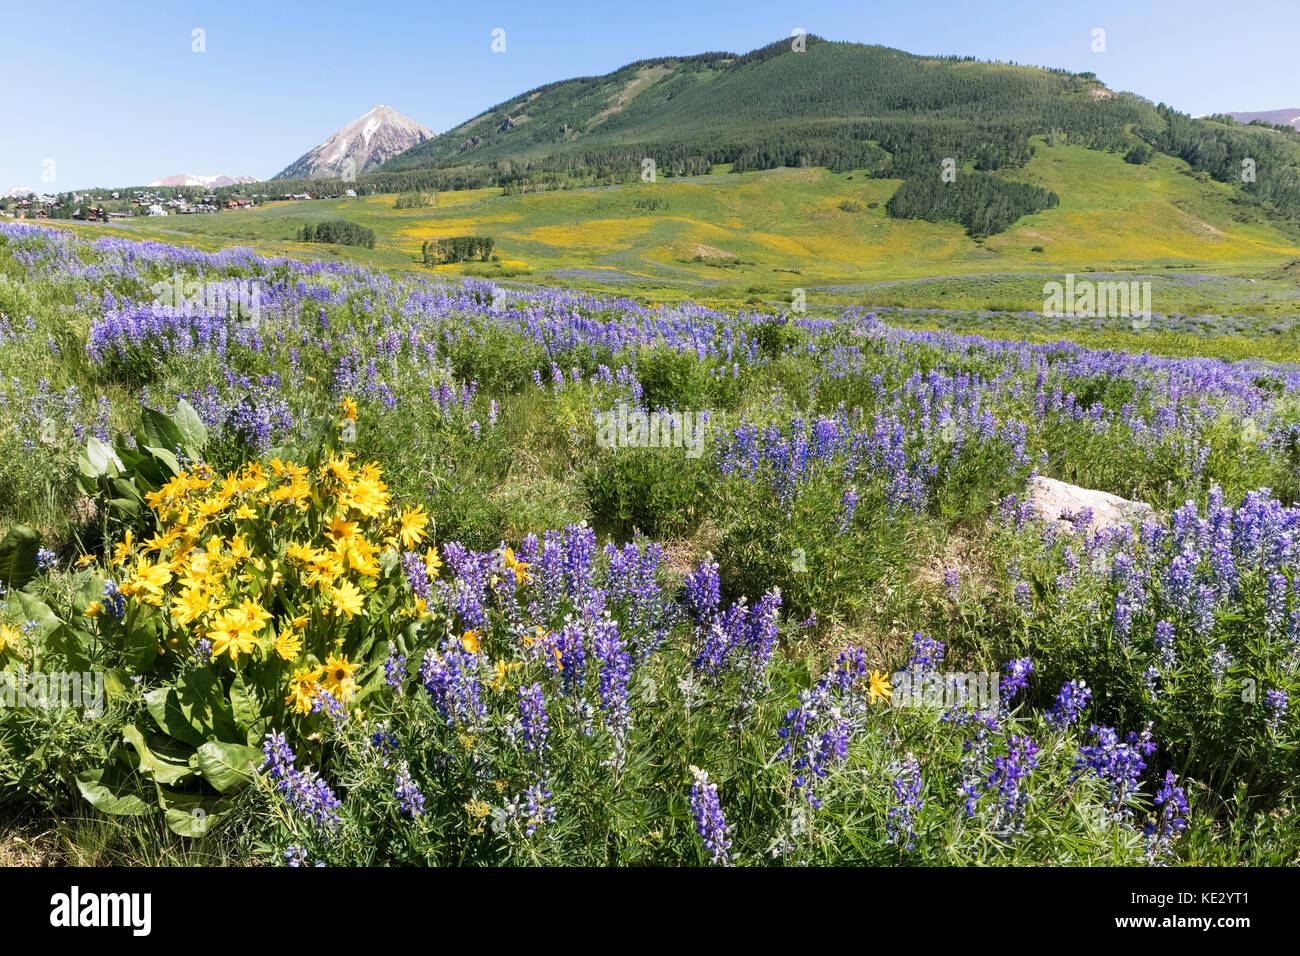 Aspen Sunflowers and Silvery Lupine (Lupinus argenteus) covers the foothills of the Rocky Mountains, Crested Butte, - Stock Image